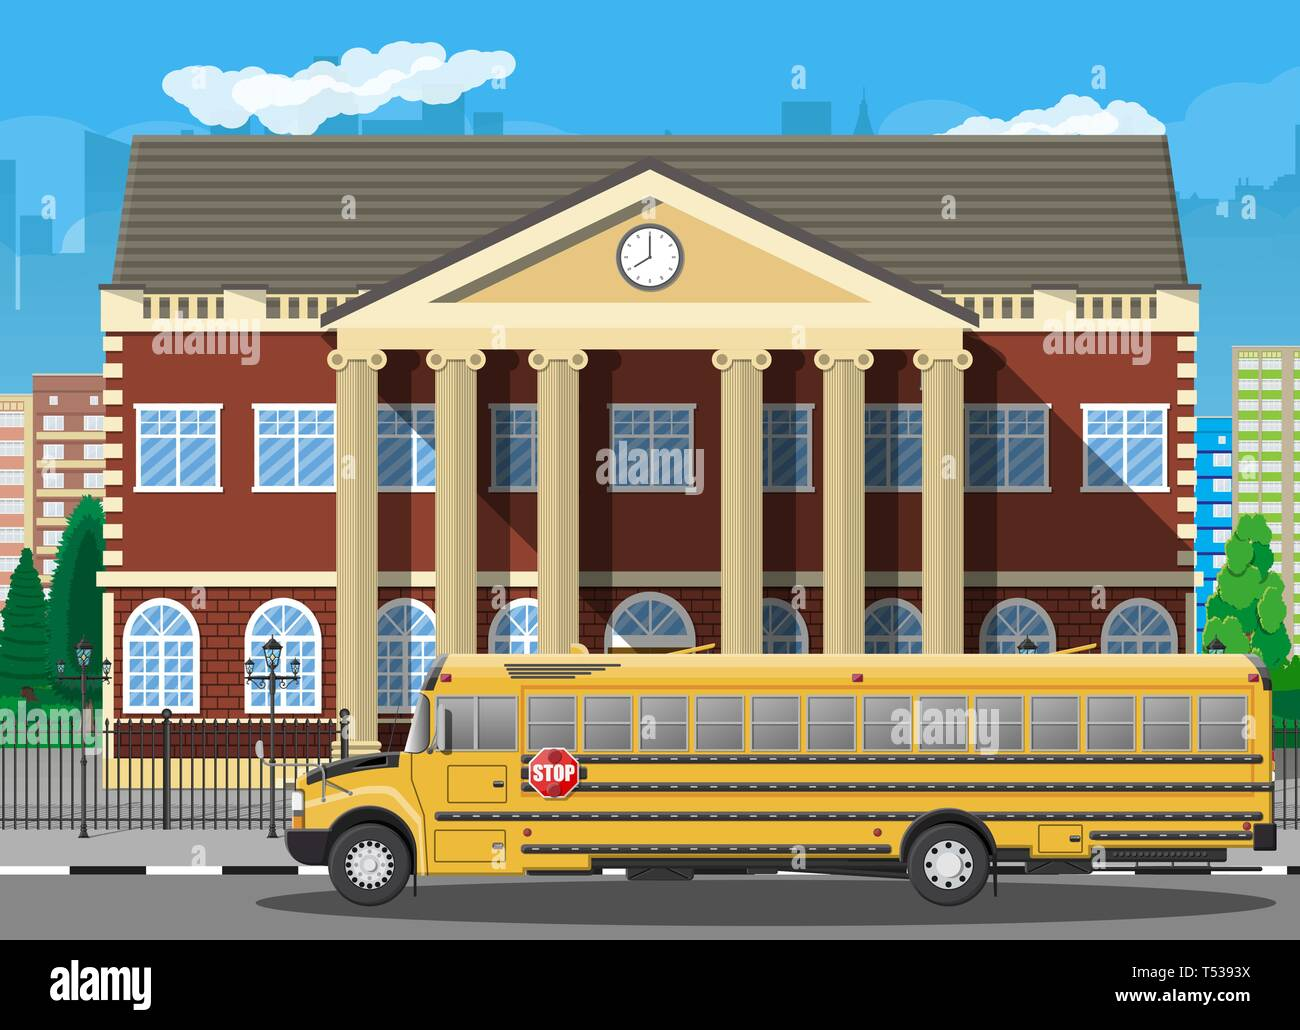 Brown Building With Ornate Windows, Multiple Storeys With ...  |Brown University Building Cartoon